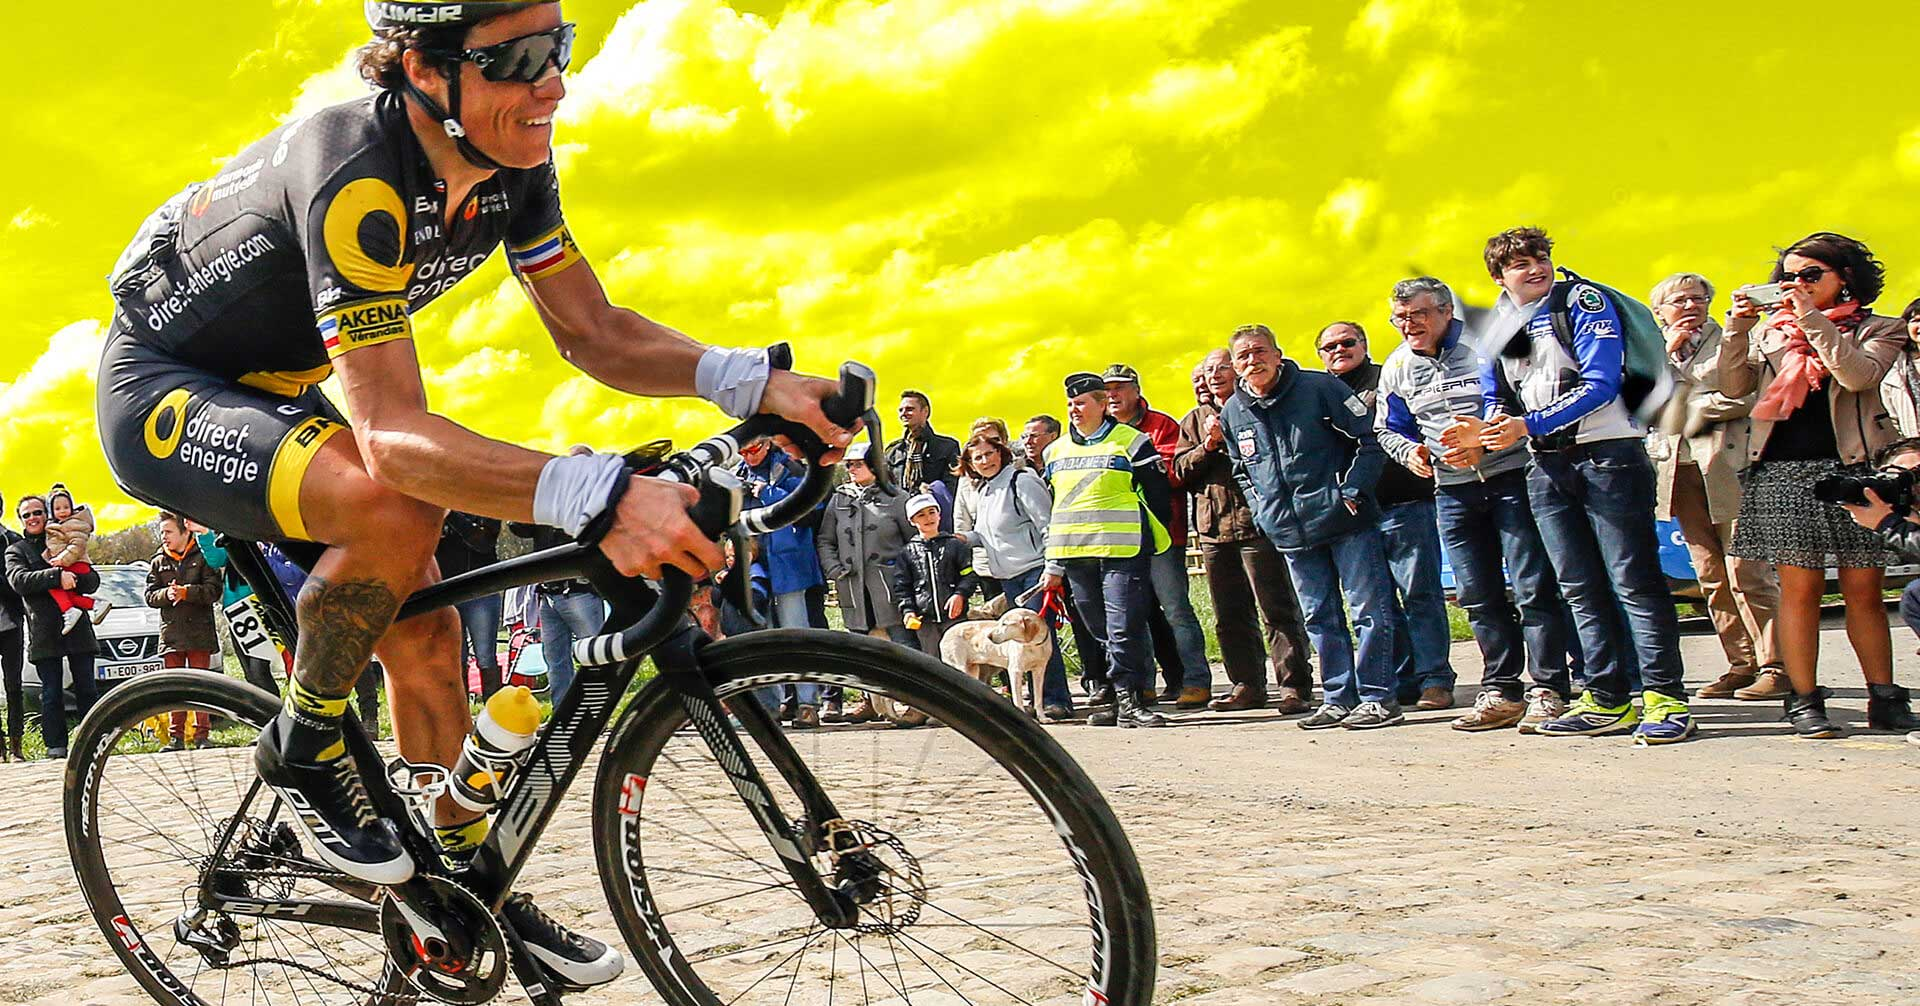 You are currently viewing Direct Energie Team – Tour de France 2017